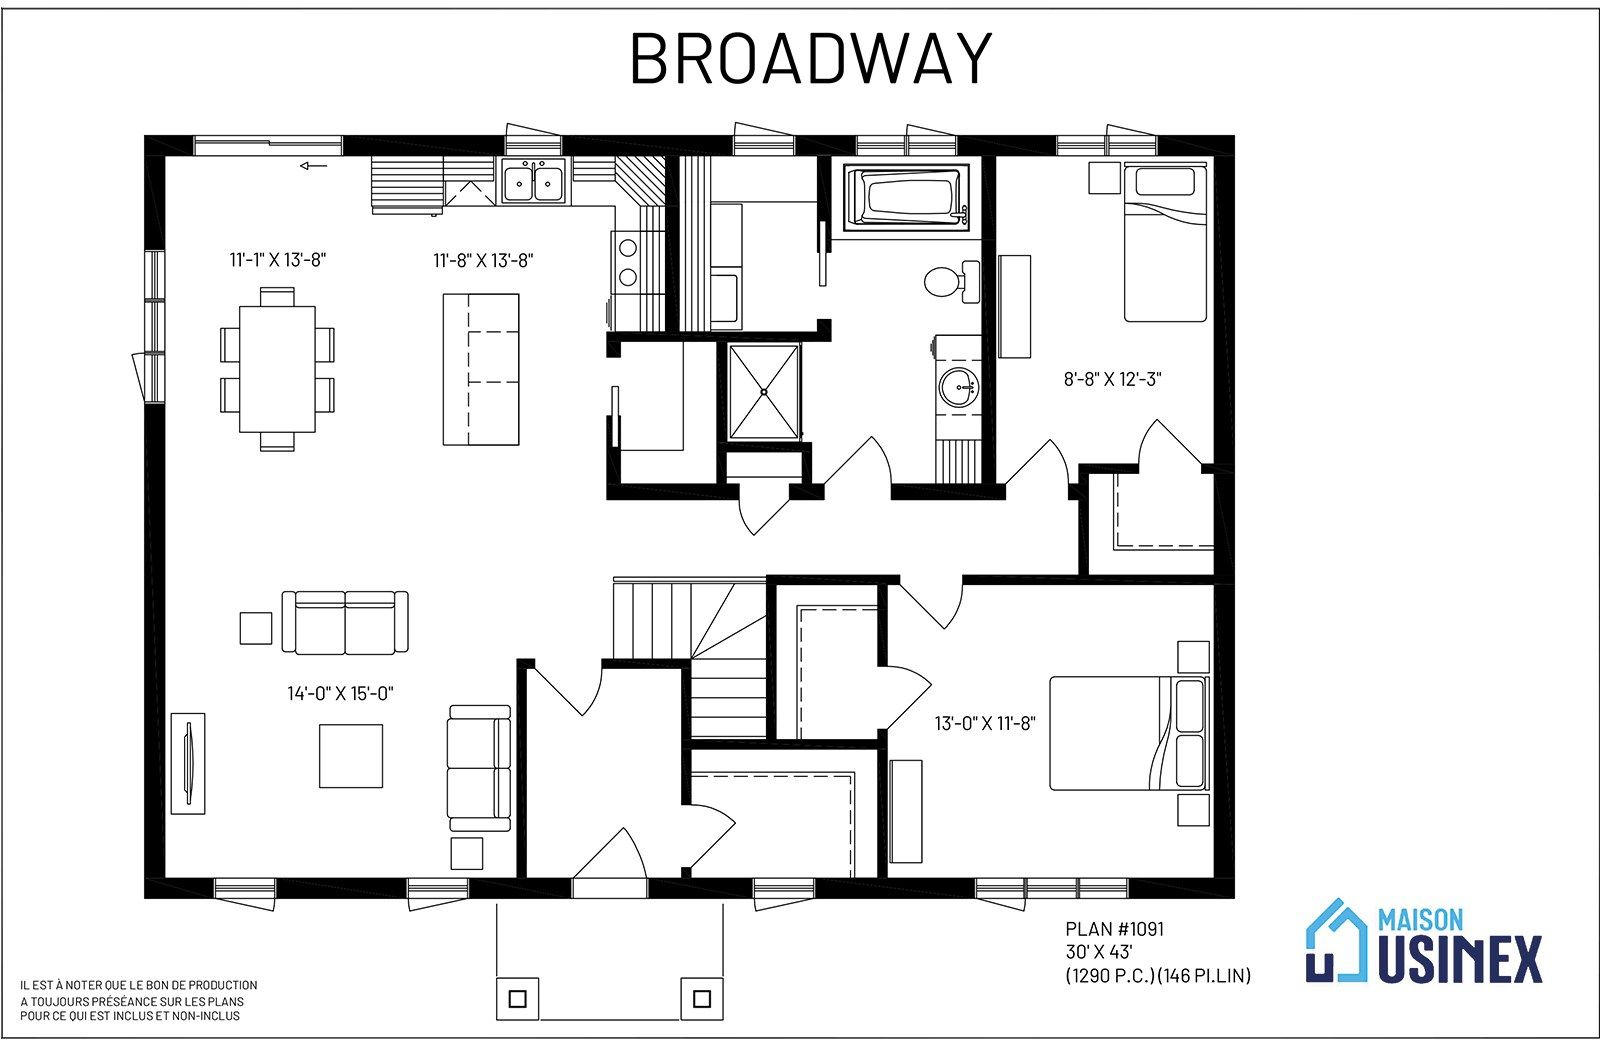 Broadway Maison Usinex How To Plan House Plans House Floor Plans